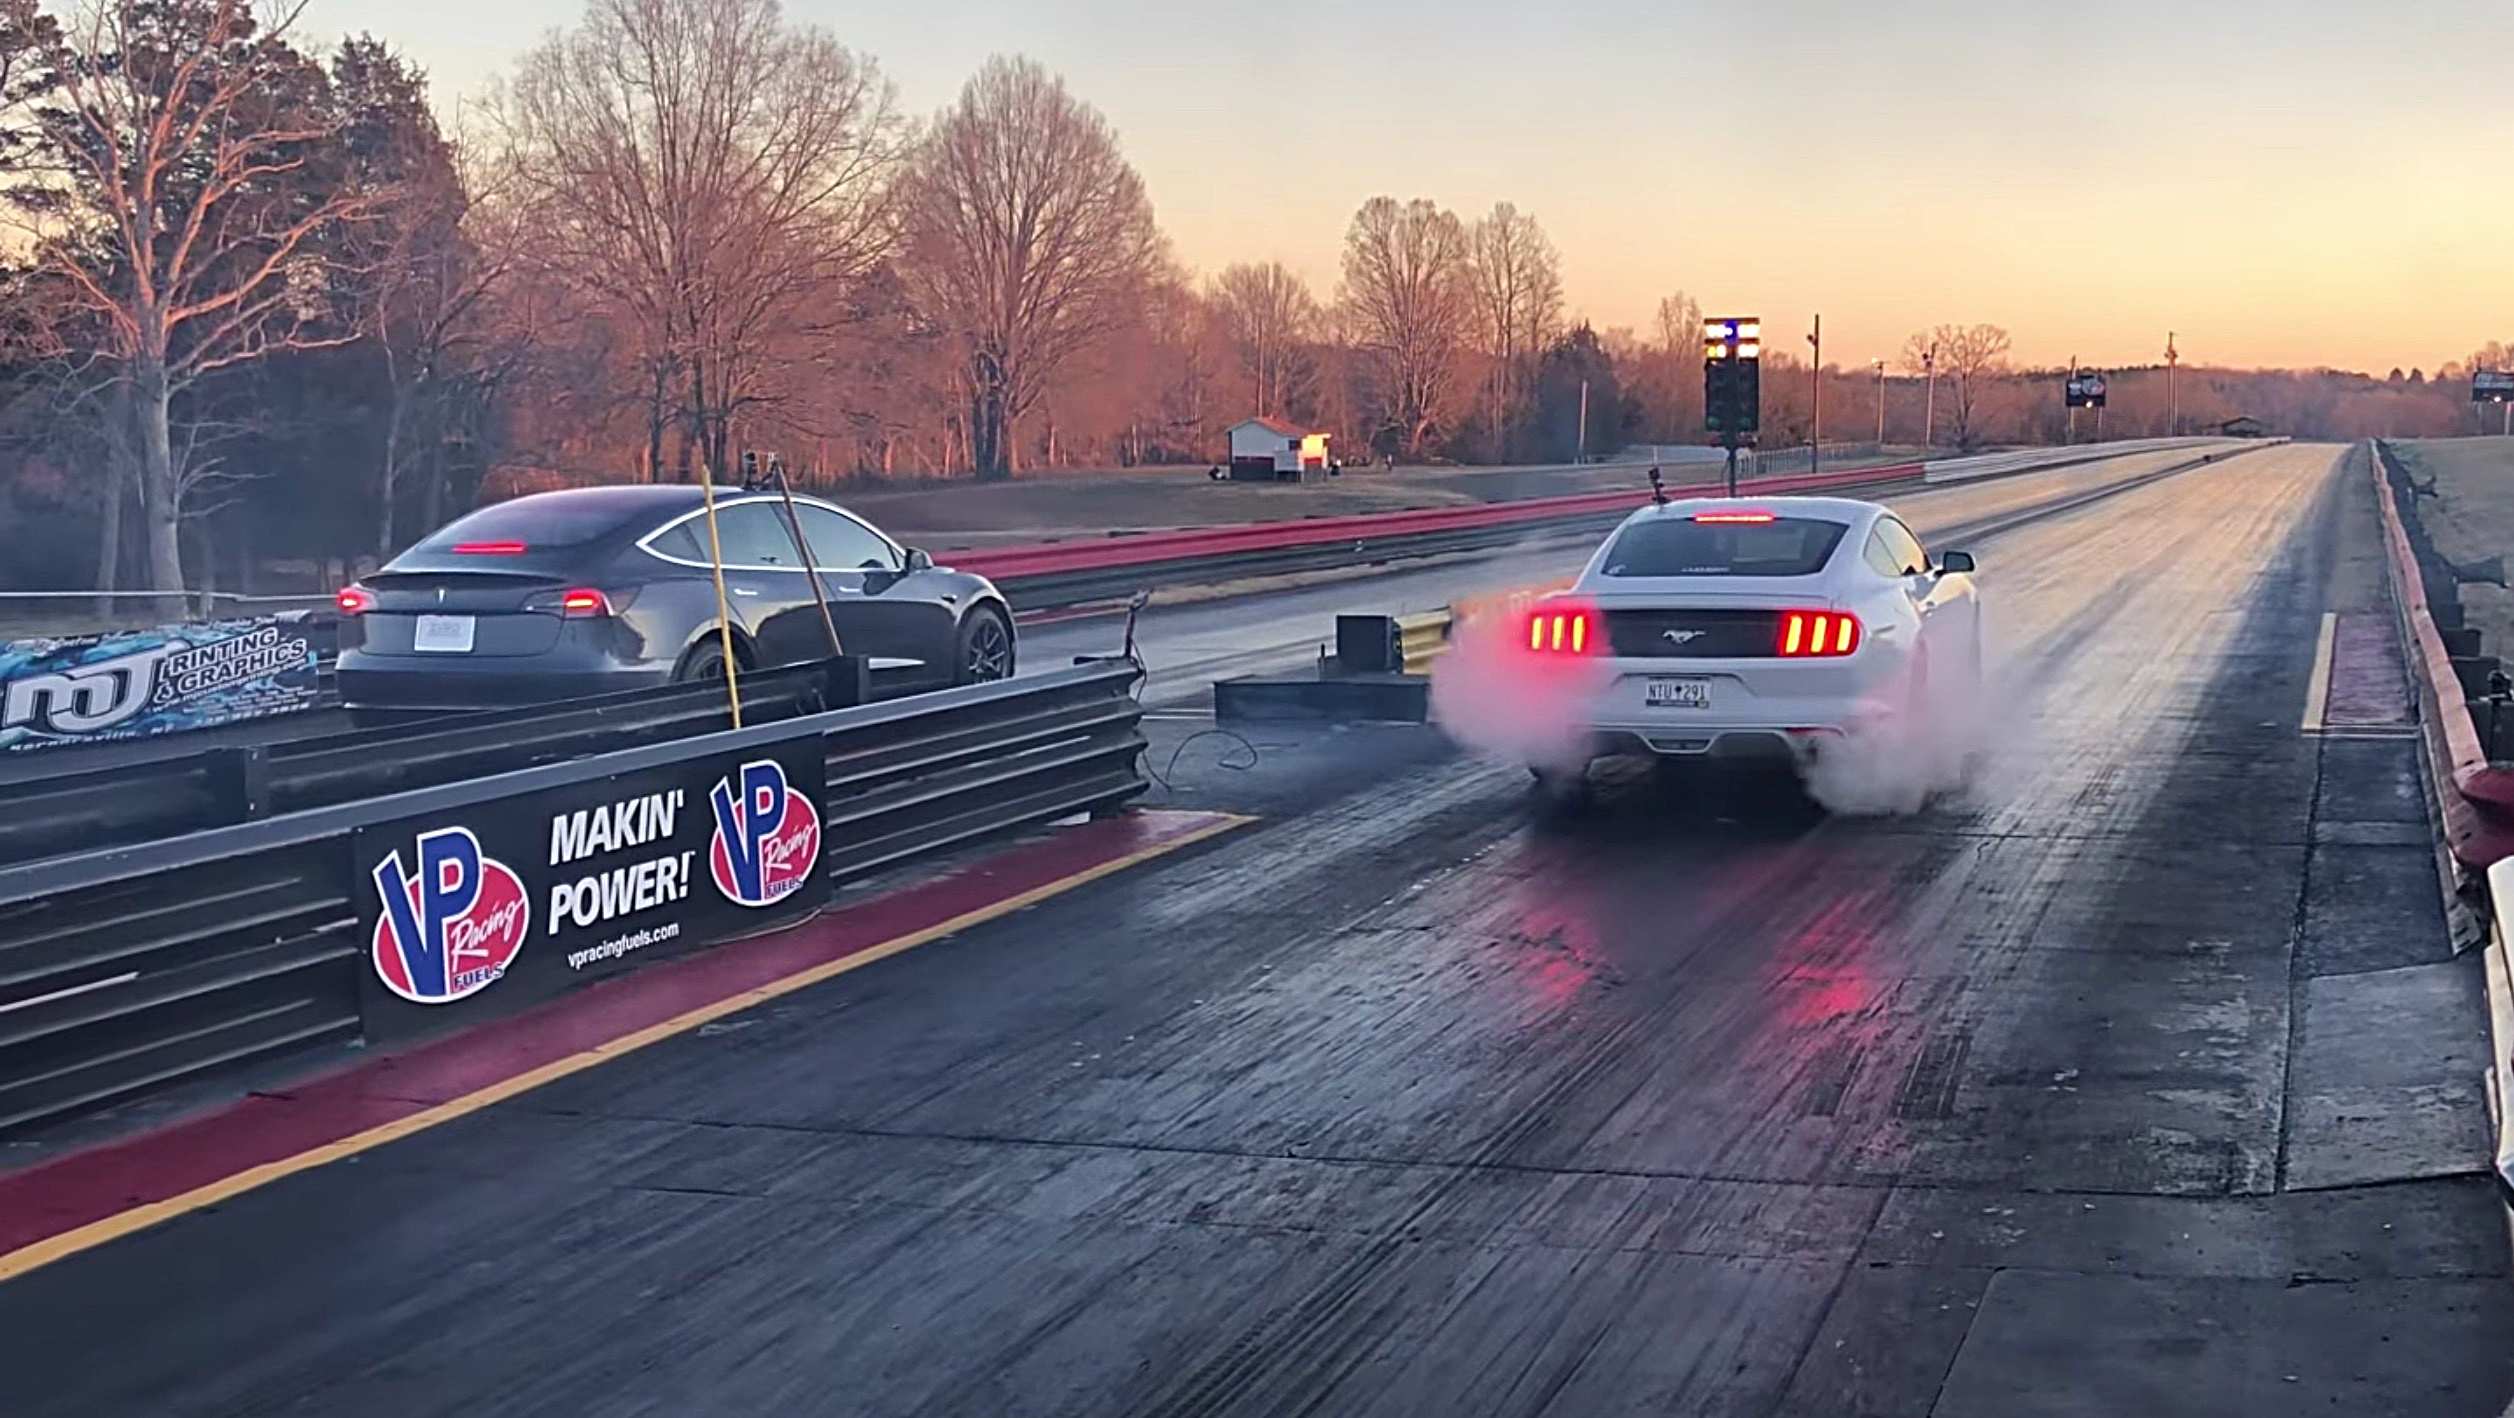 tesla-model-3-vs-mustang-ecoboost-drag-race